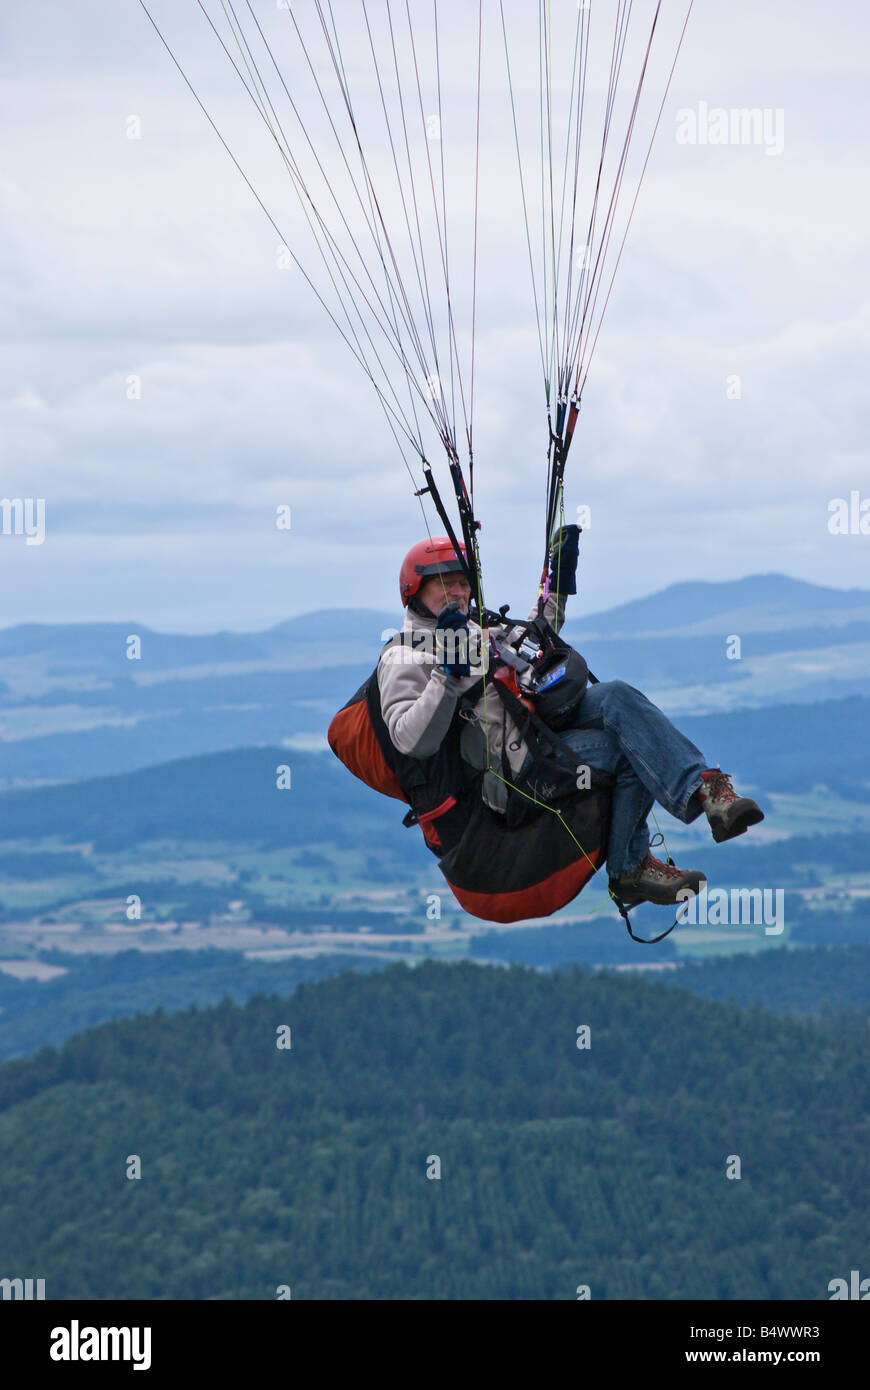 Paragliders on Le Puy de Dome France Stock Photo